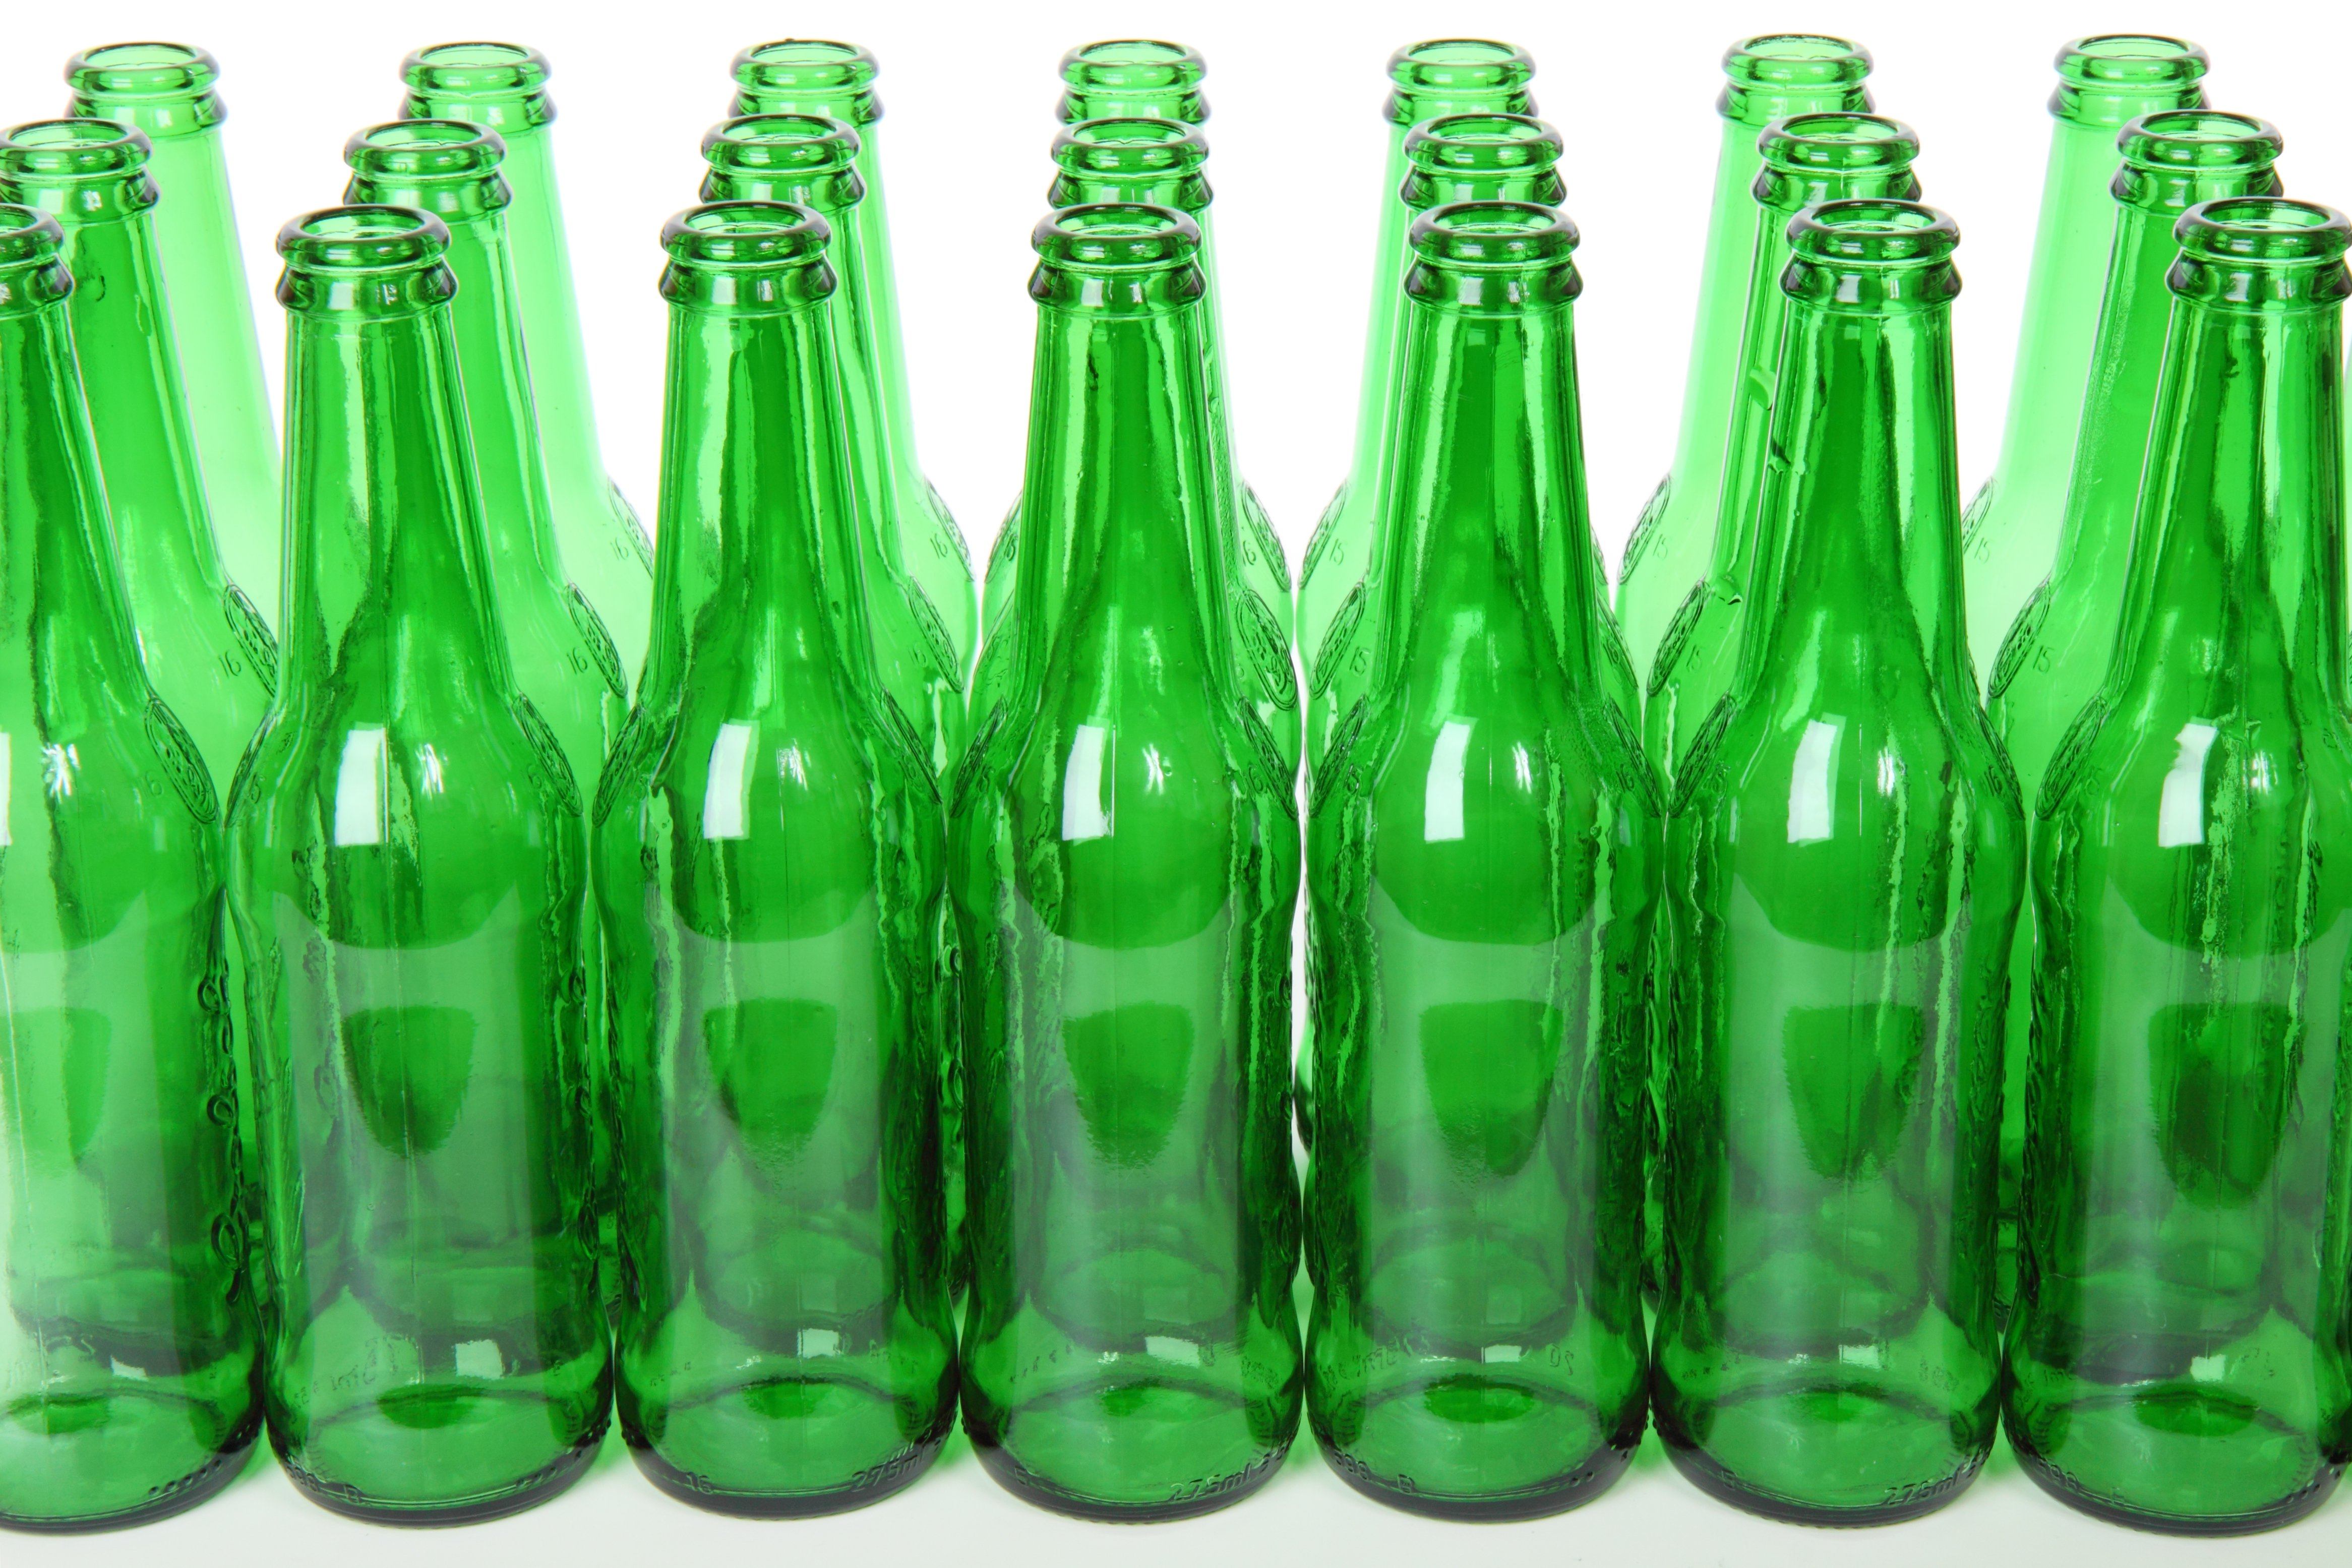 Recycling in guadalajara mexico discovergdl - How to recycle glass bottles ...